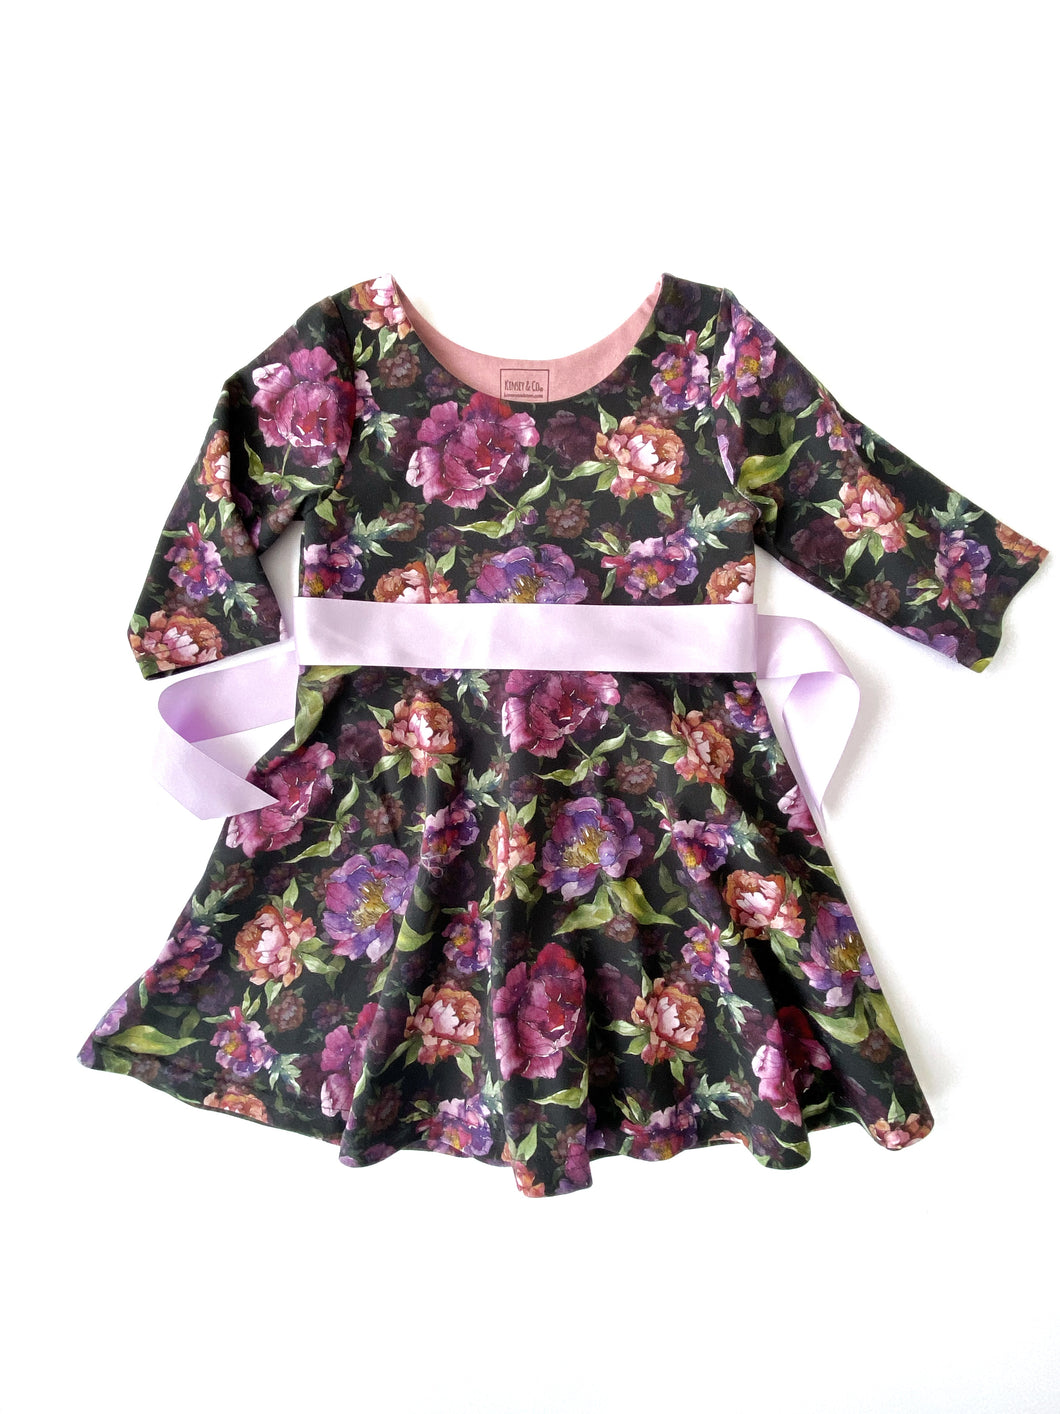 Minna Heart Back Tunic/Dress 4T Ready to Ship